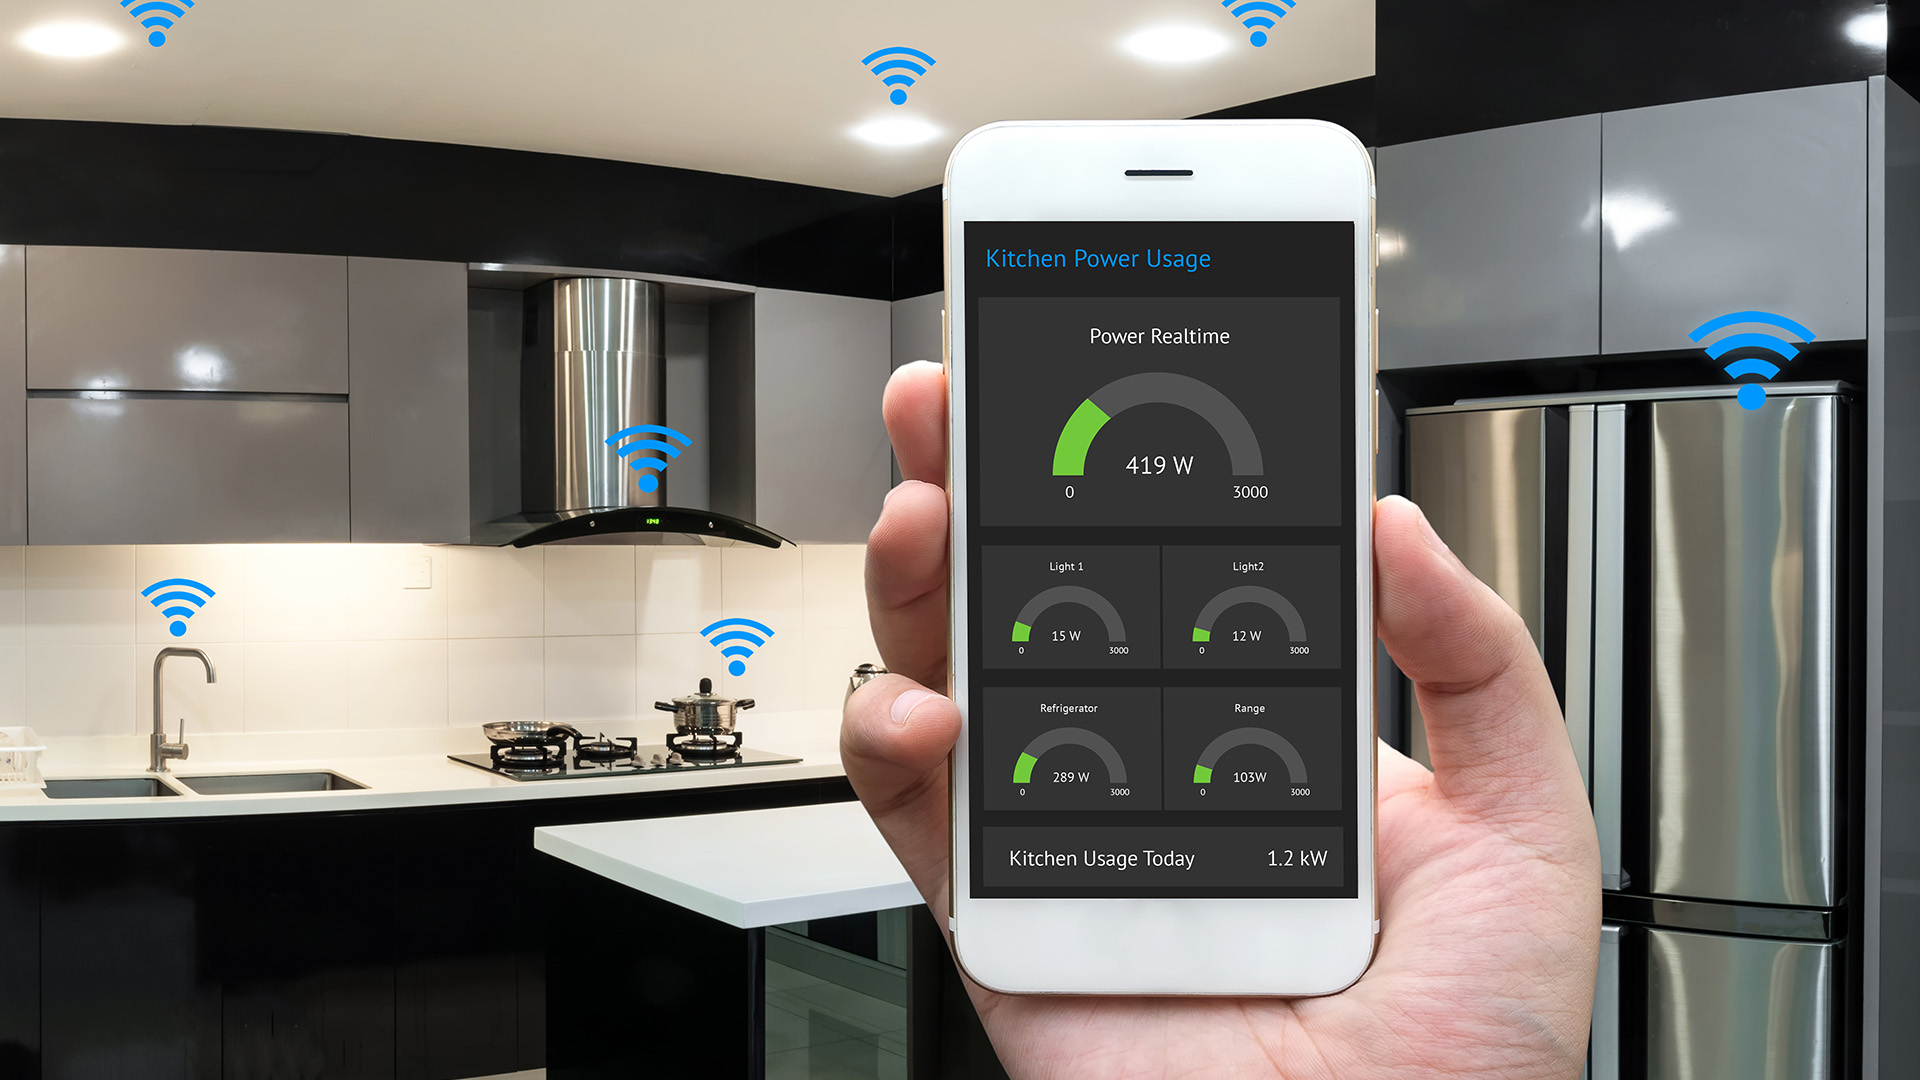 IOT Devices in Kitchen being Controlled by a Mobile App